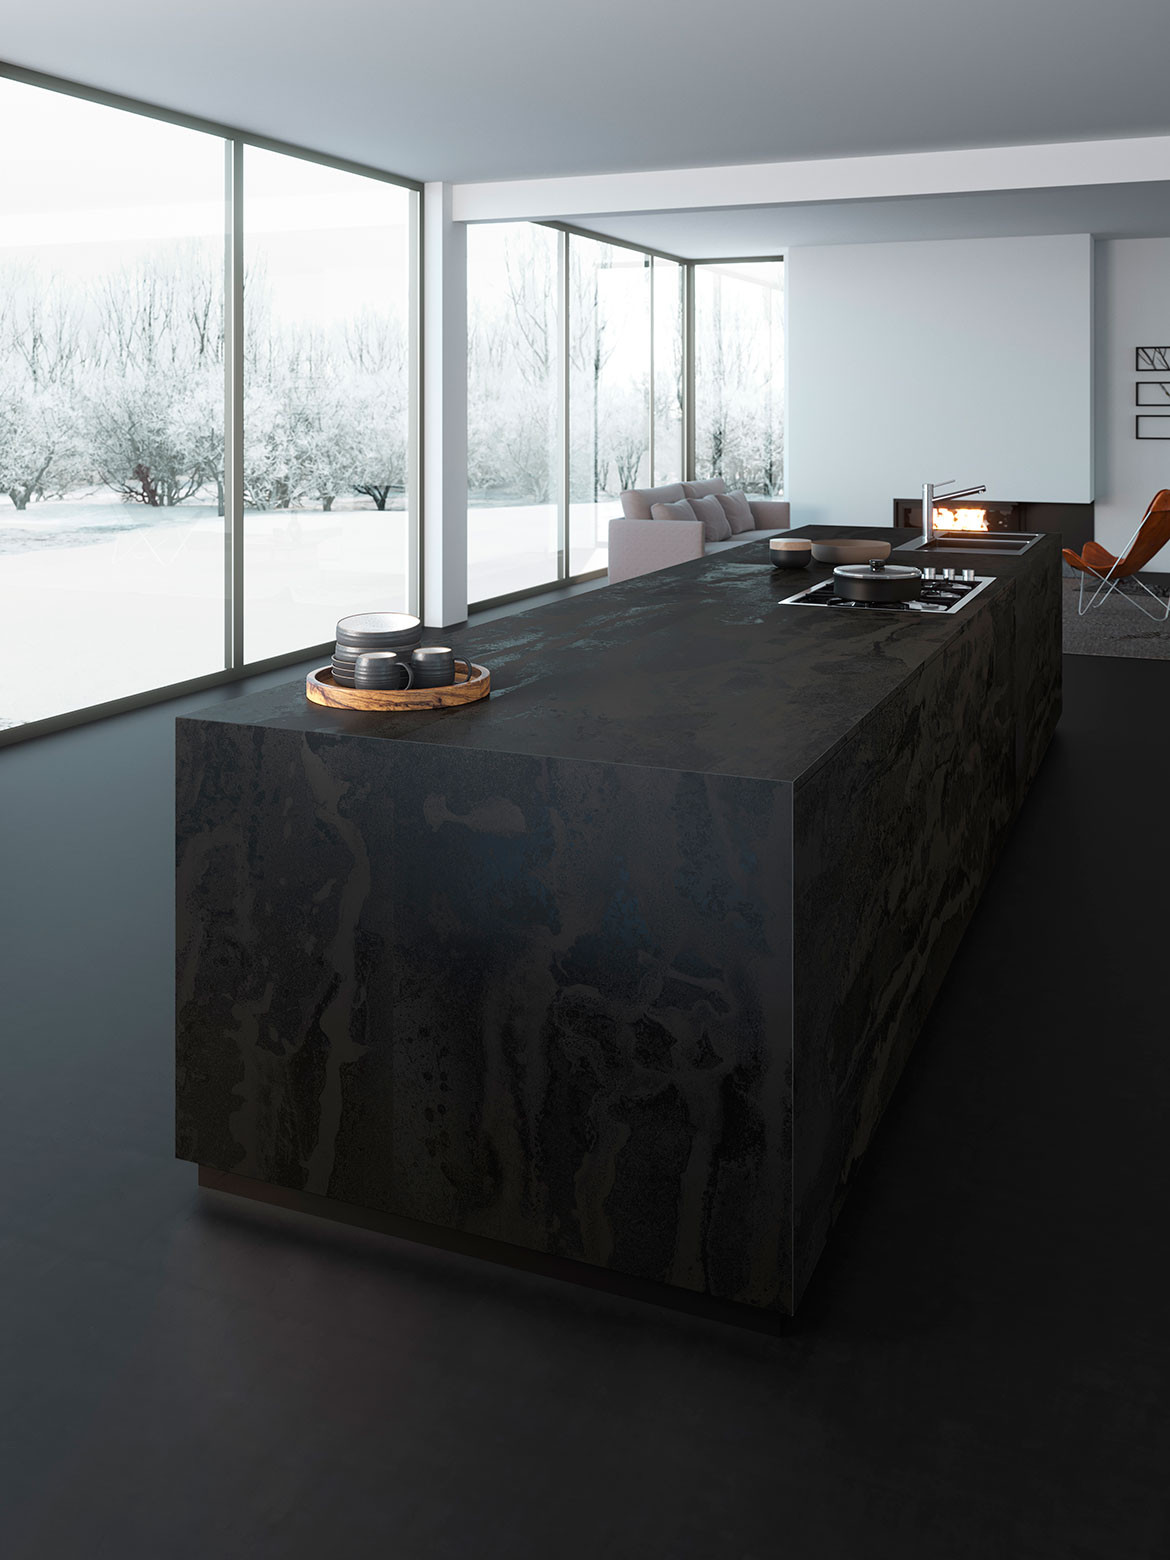 The Industrial collection from Dekton